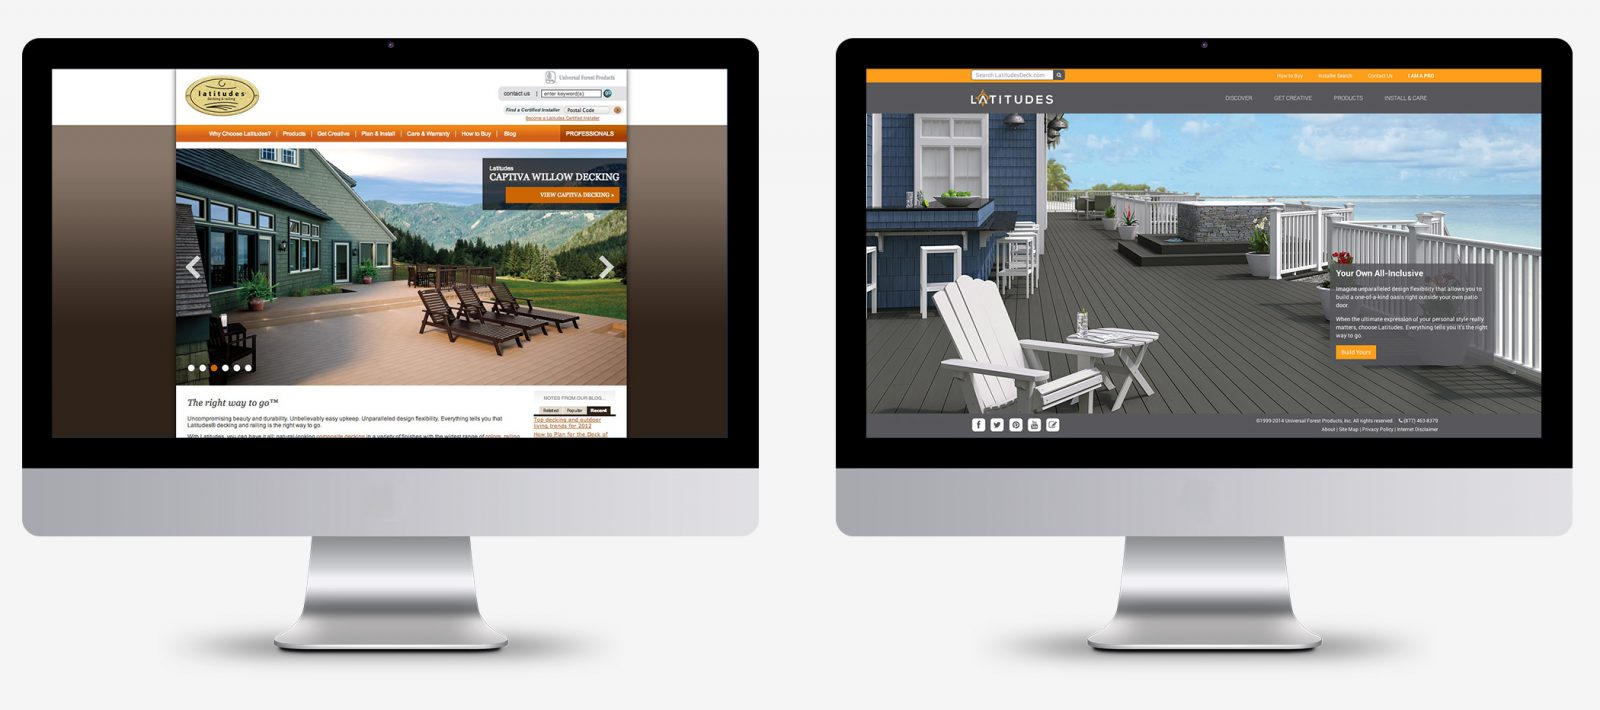 latitudes website before and after